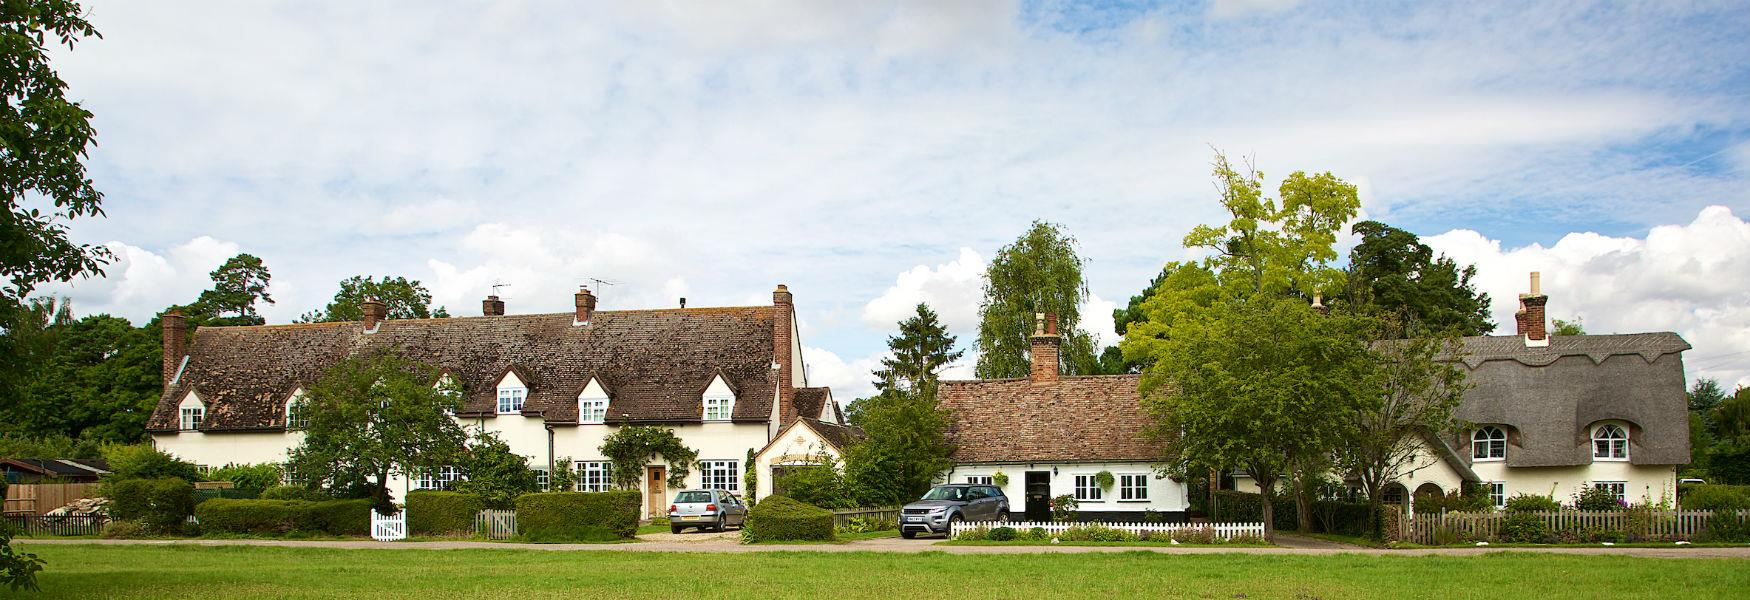 Cottages in Bedfordshire